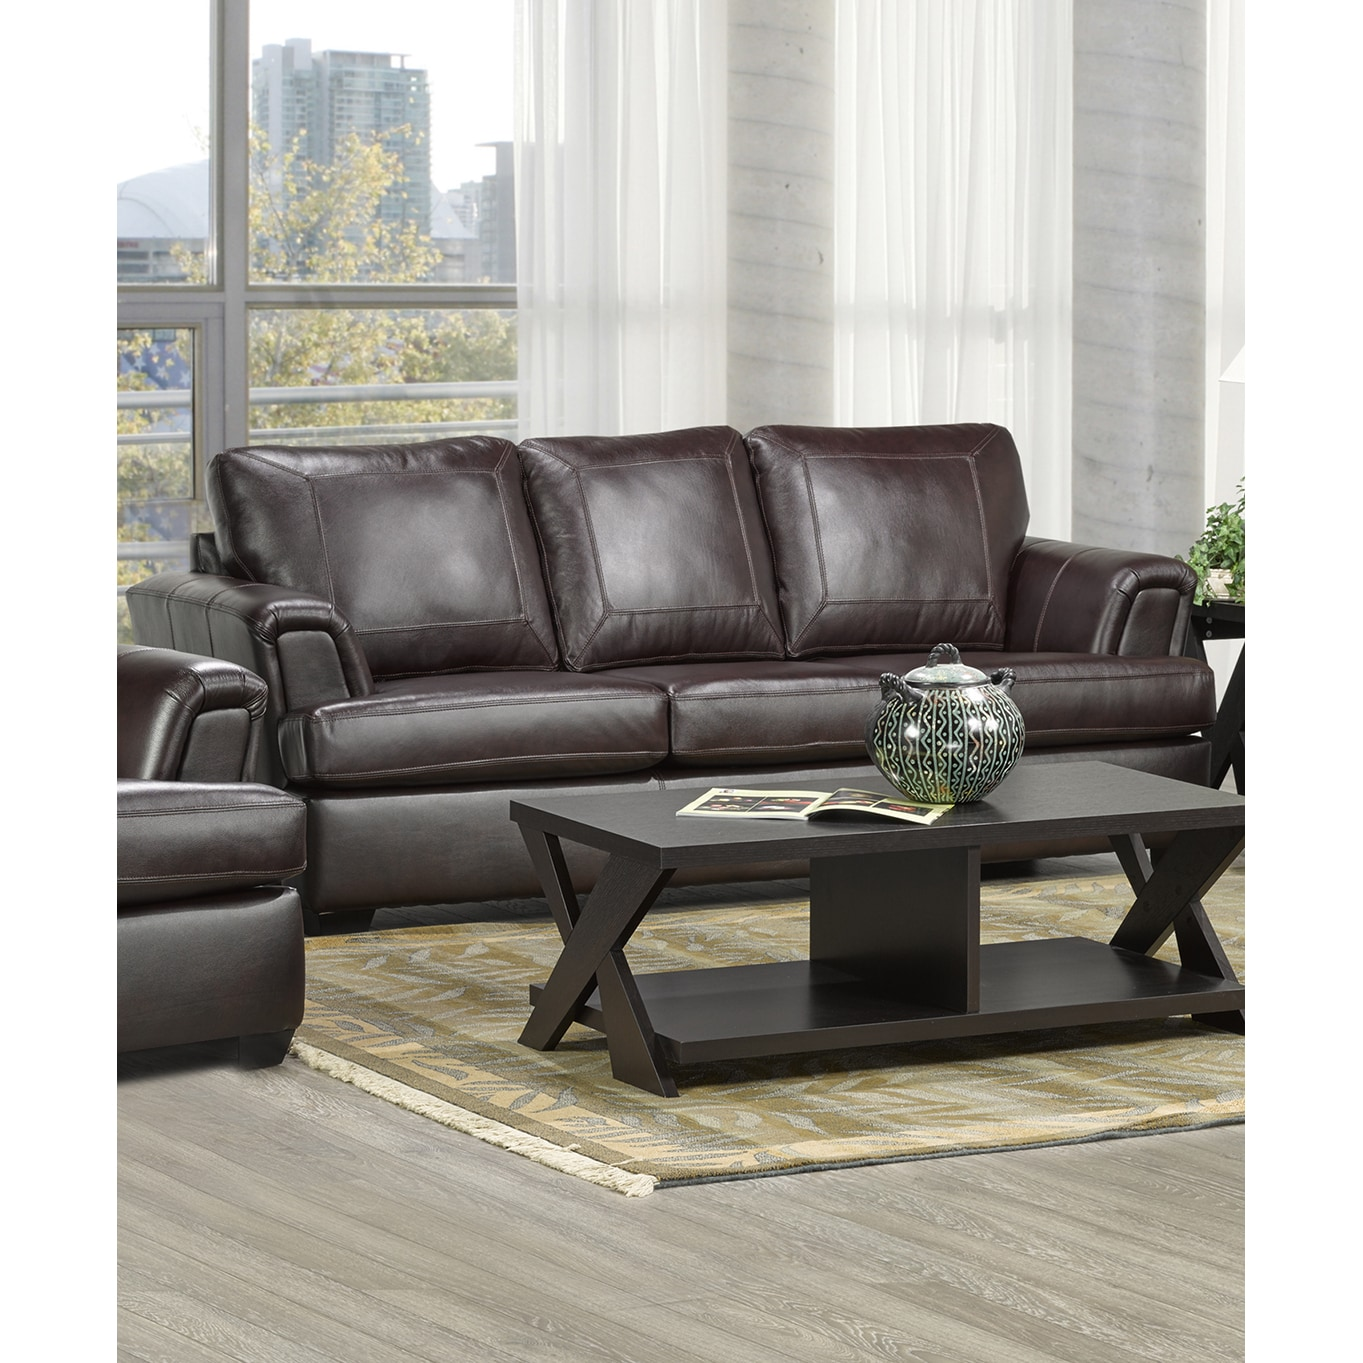 Coja Duke Italian Leather Sofa (Cranberry), Brown